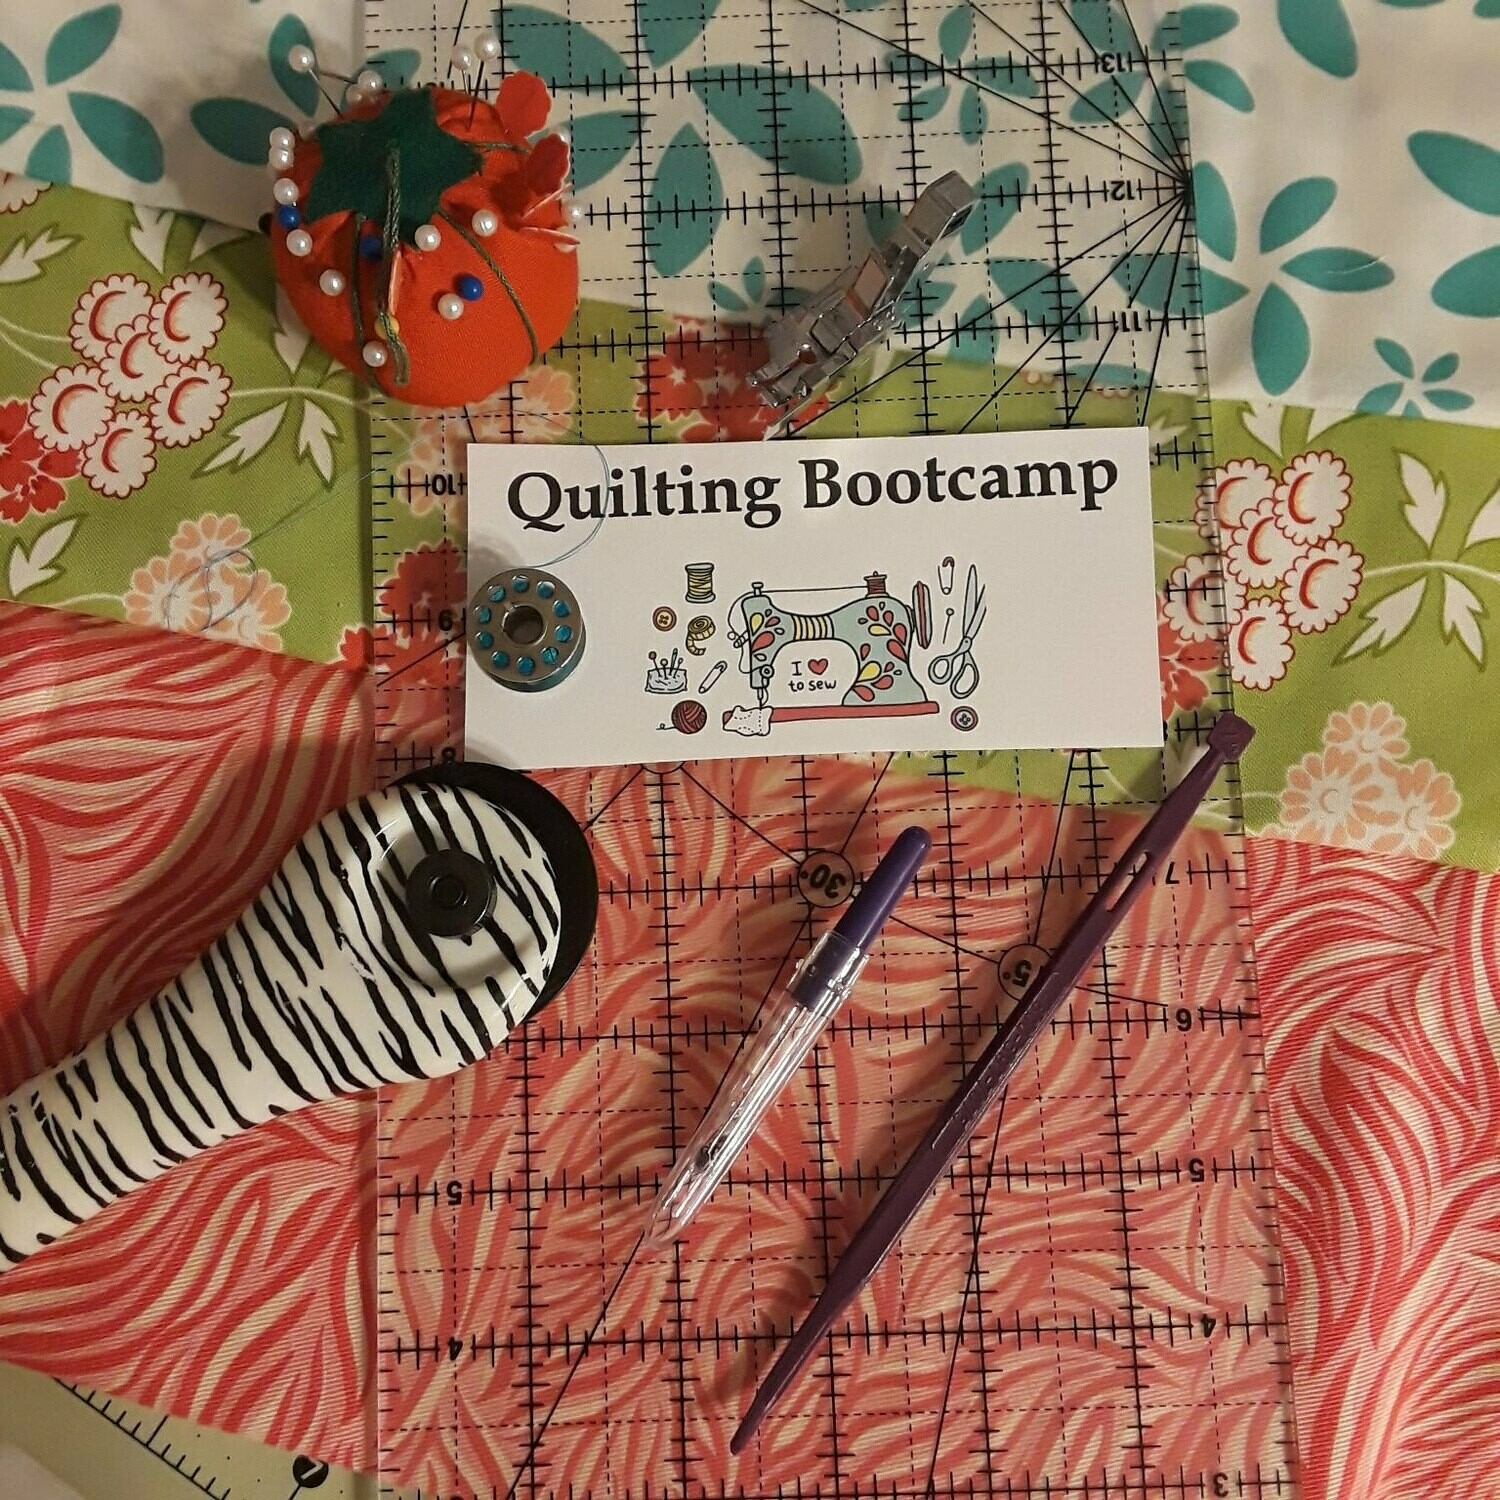 Quilting Bootcamp -                           Saturday, October 17 -  9:00am to 12:00pm